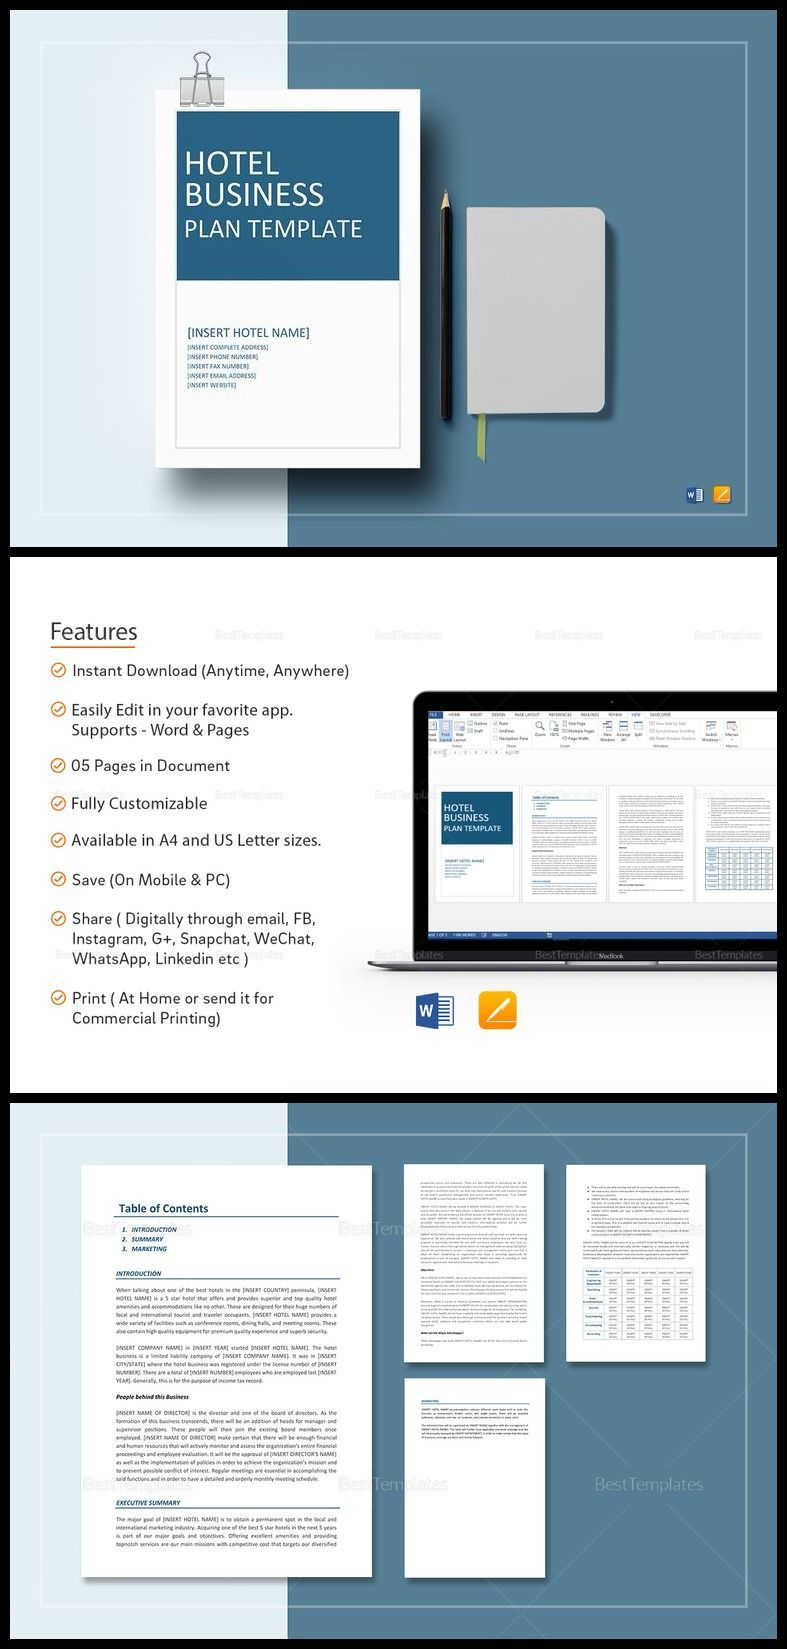 Hotel Business Plan Template Business plan template